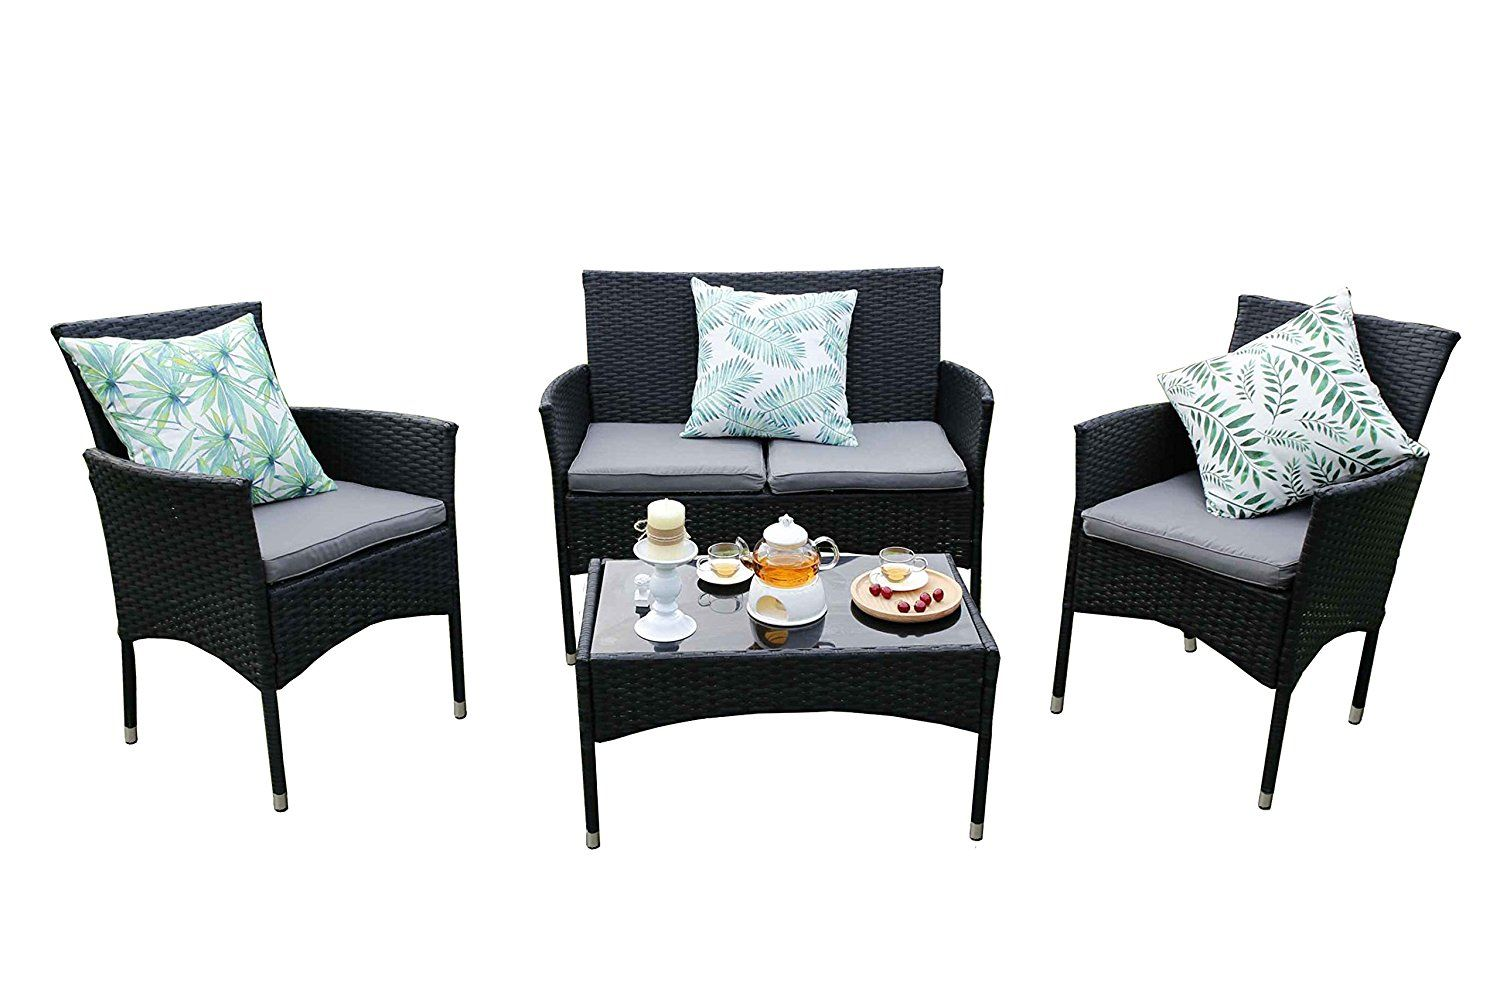 Yakoe Eton Range Outdoor Rattan Garden Furniture Sofa Set